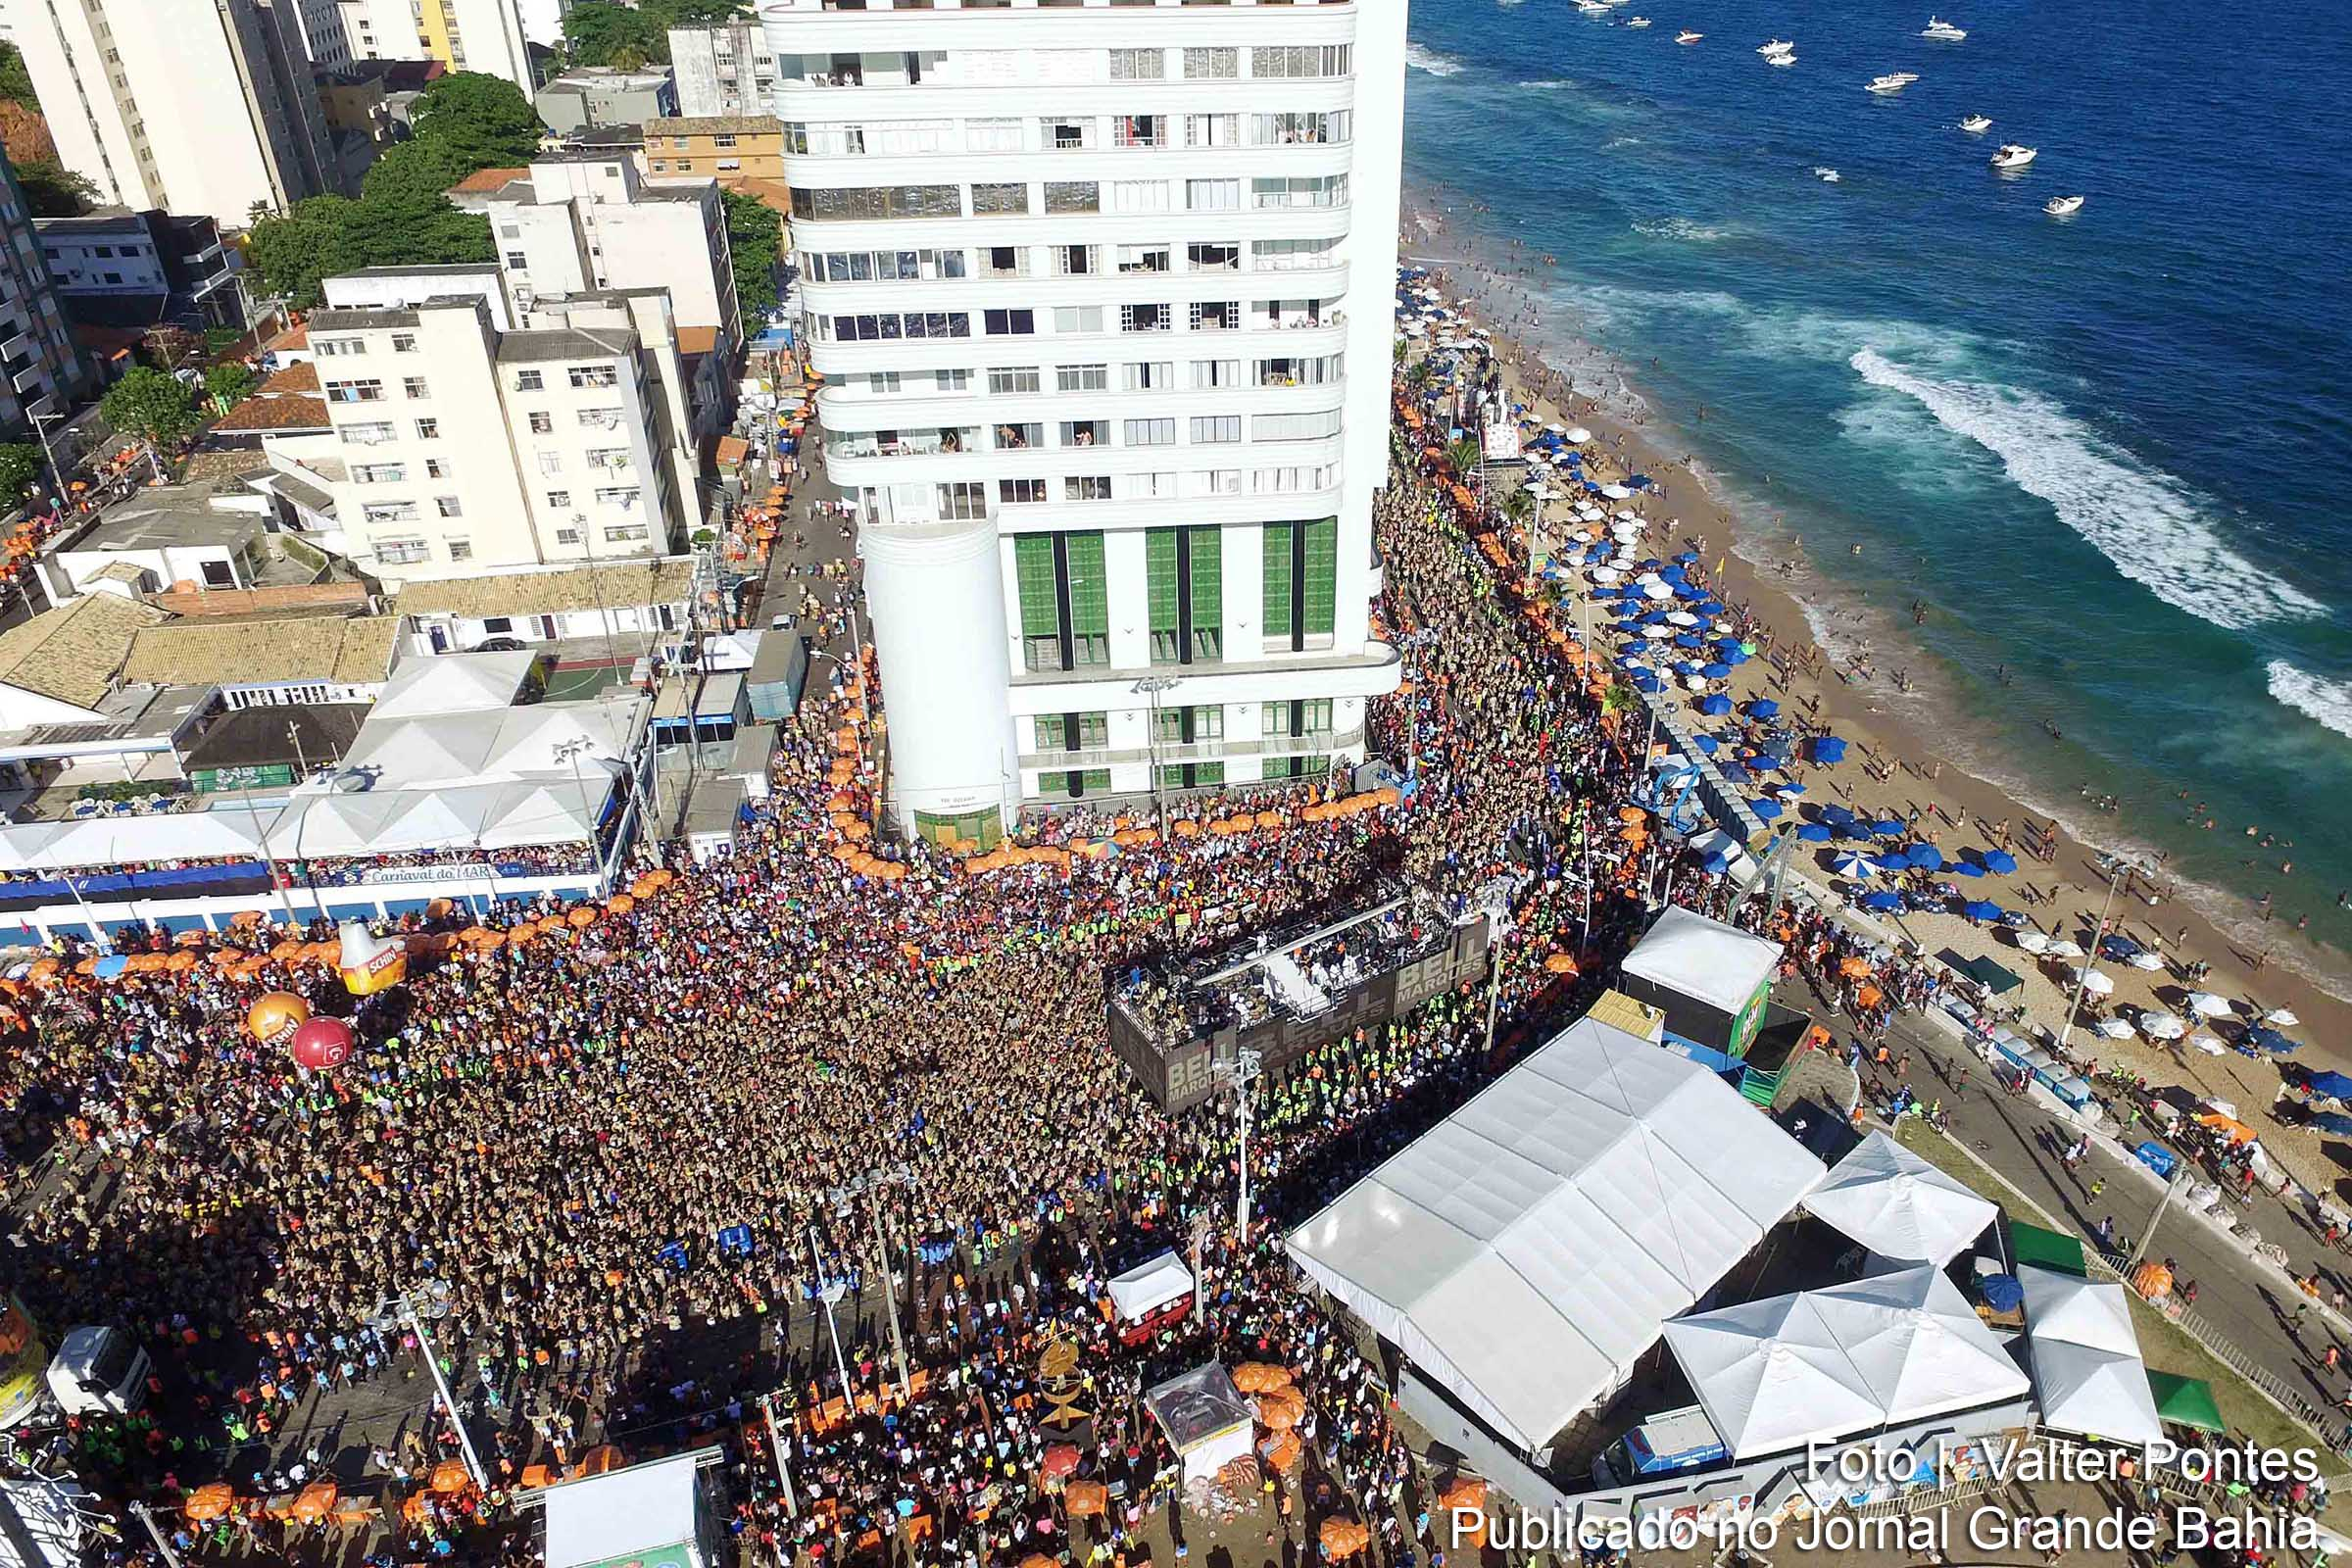 Vista aérea do carnaval 2016 de Salvador.